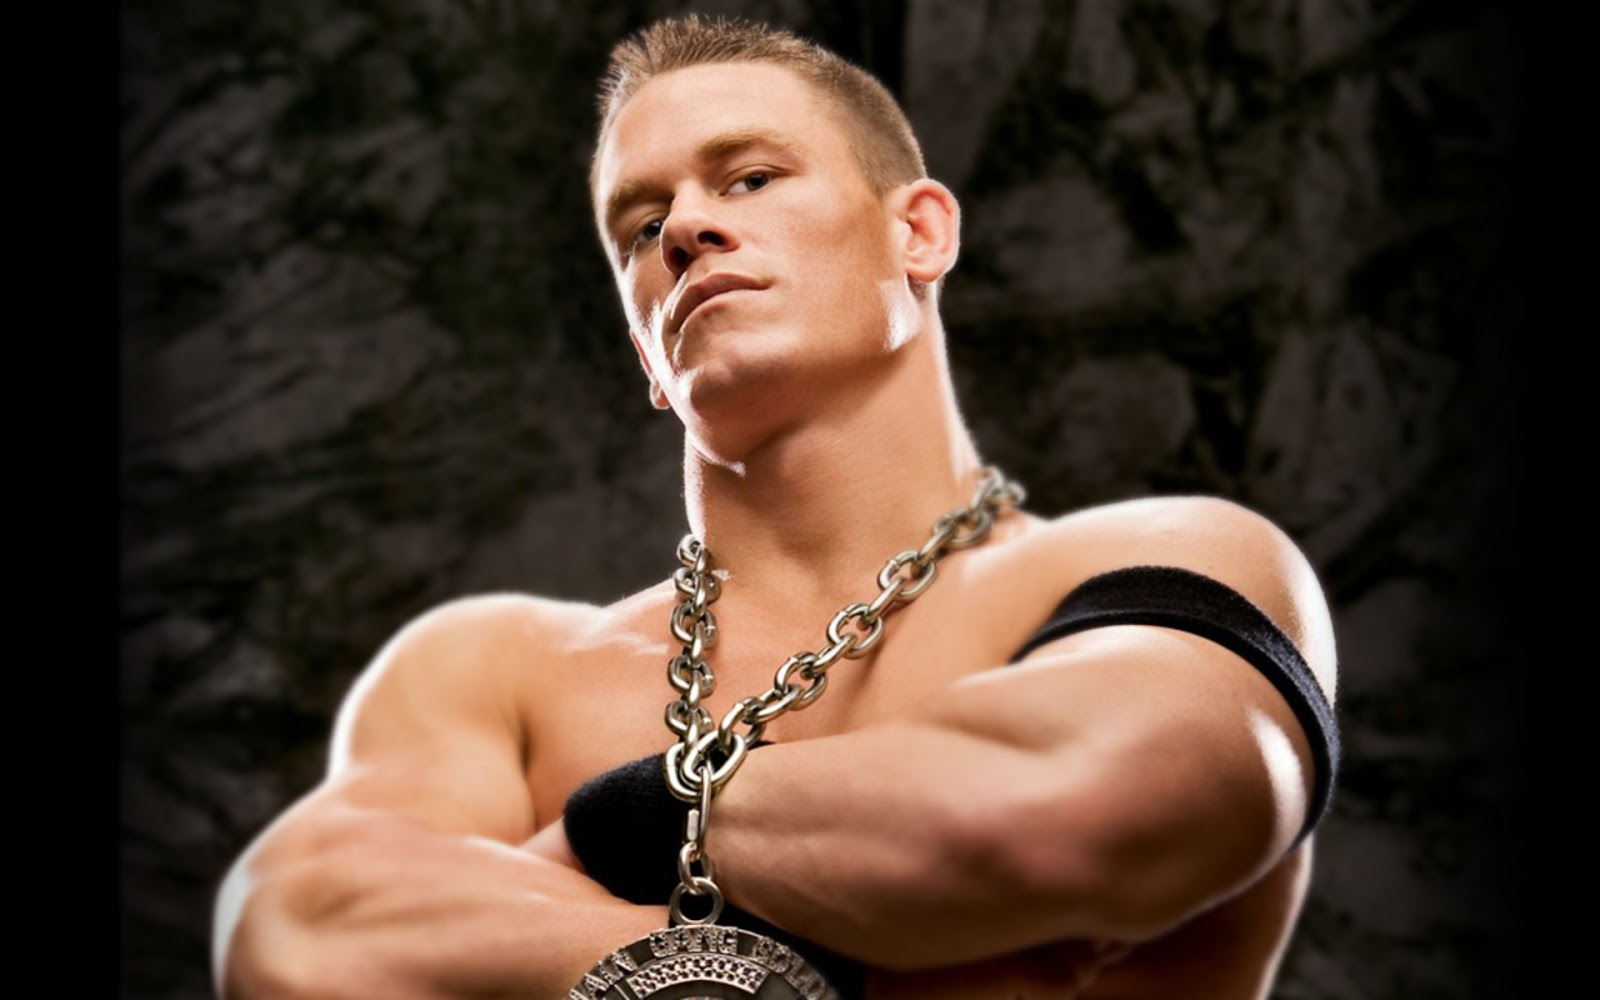 All Wallpapers John Cena New Nice hd Wallpapers 2013 1600x1000